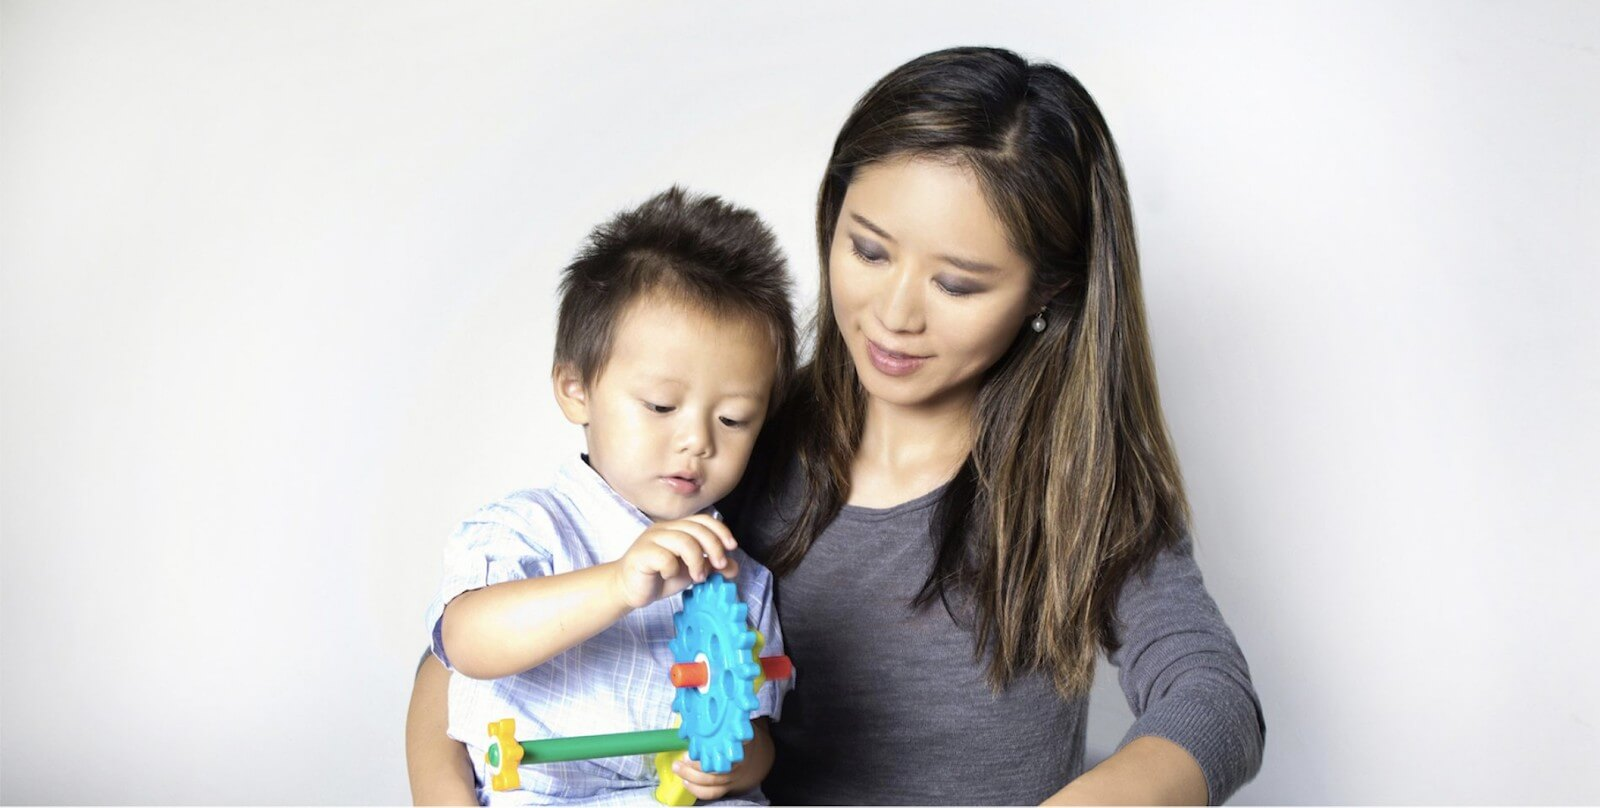 Amy Hsiao, New Law Business Model-trained, Personal Family Lawyer, playing with her young son